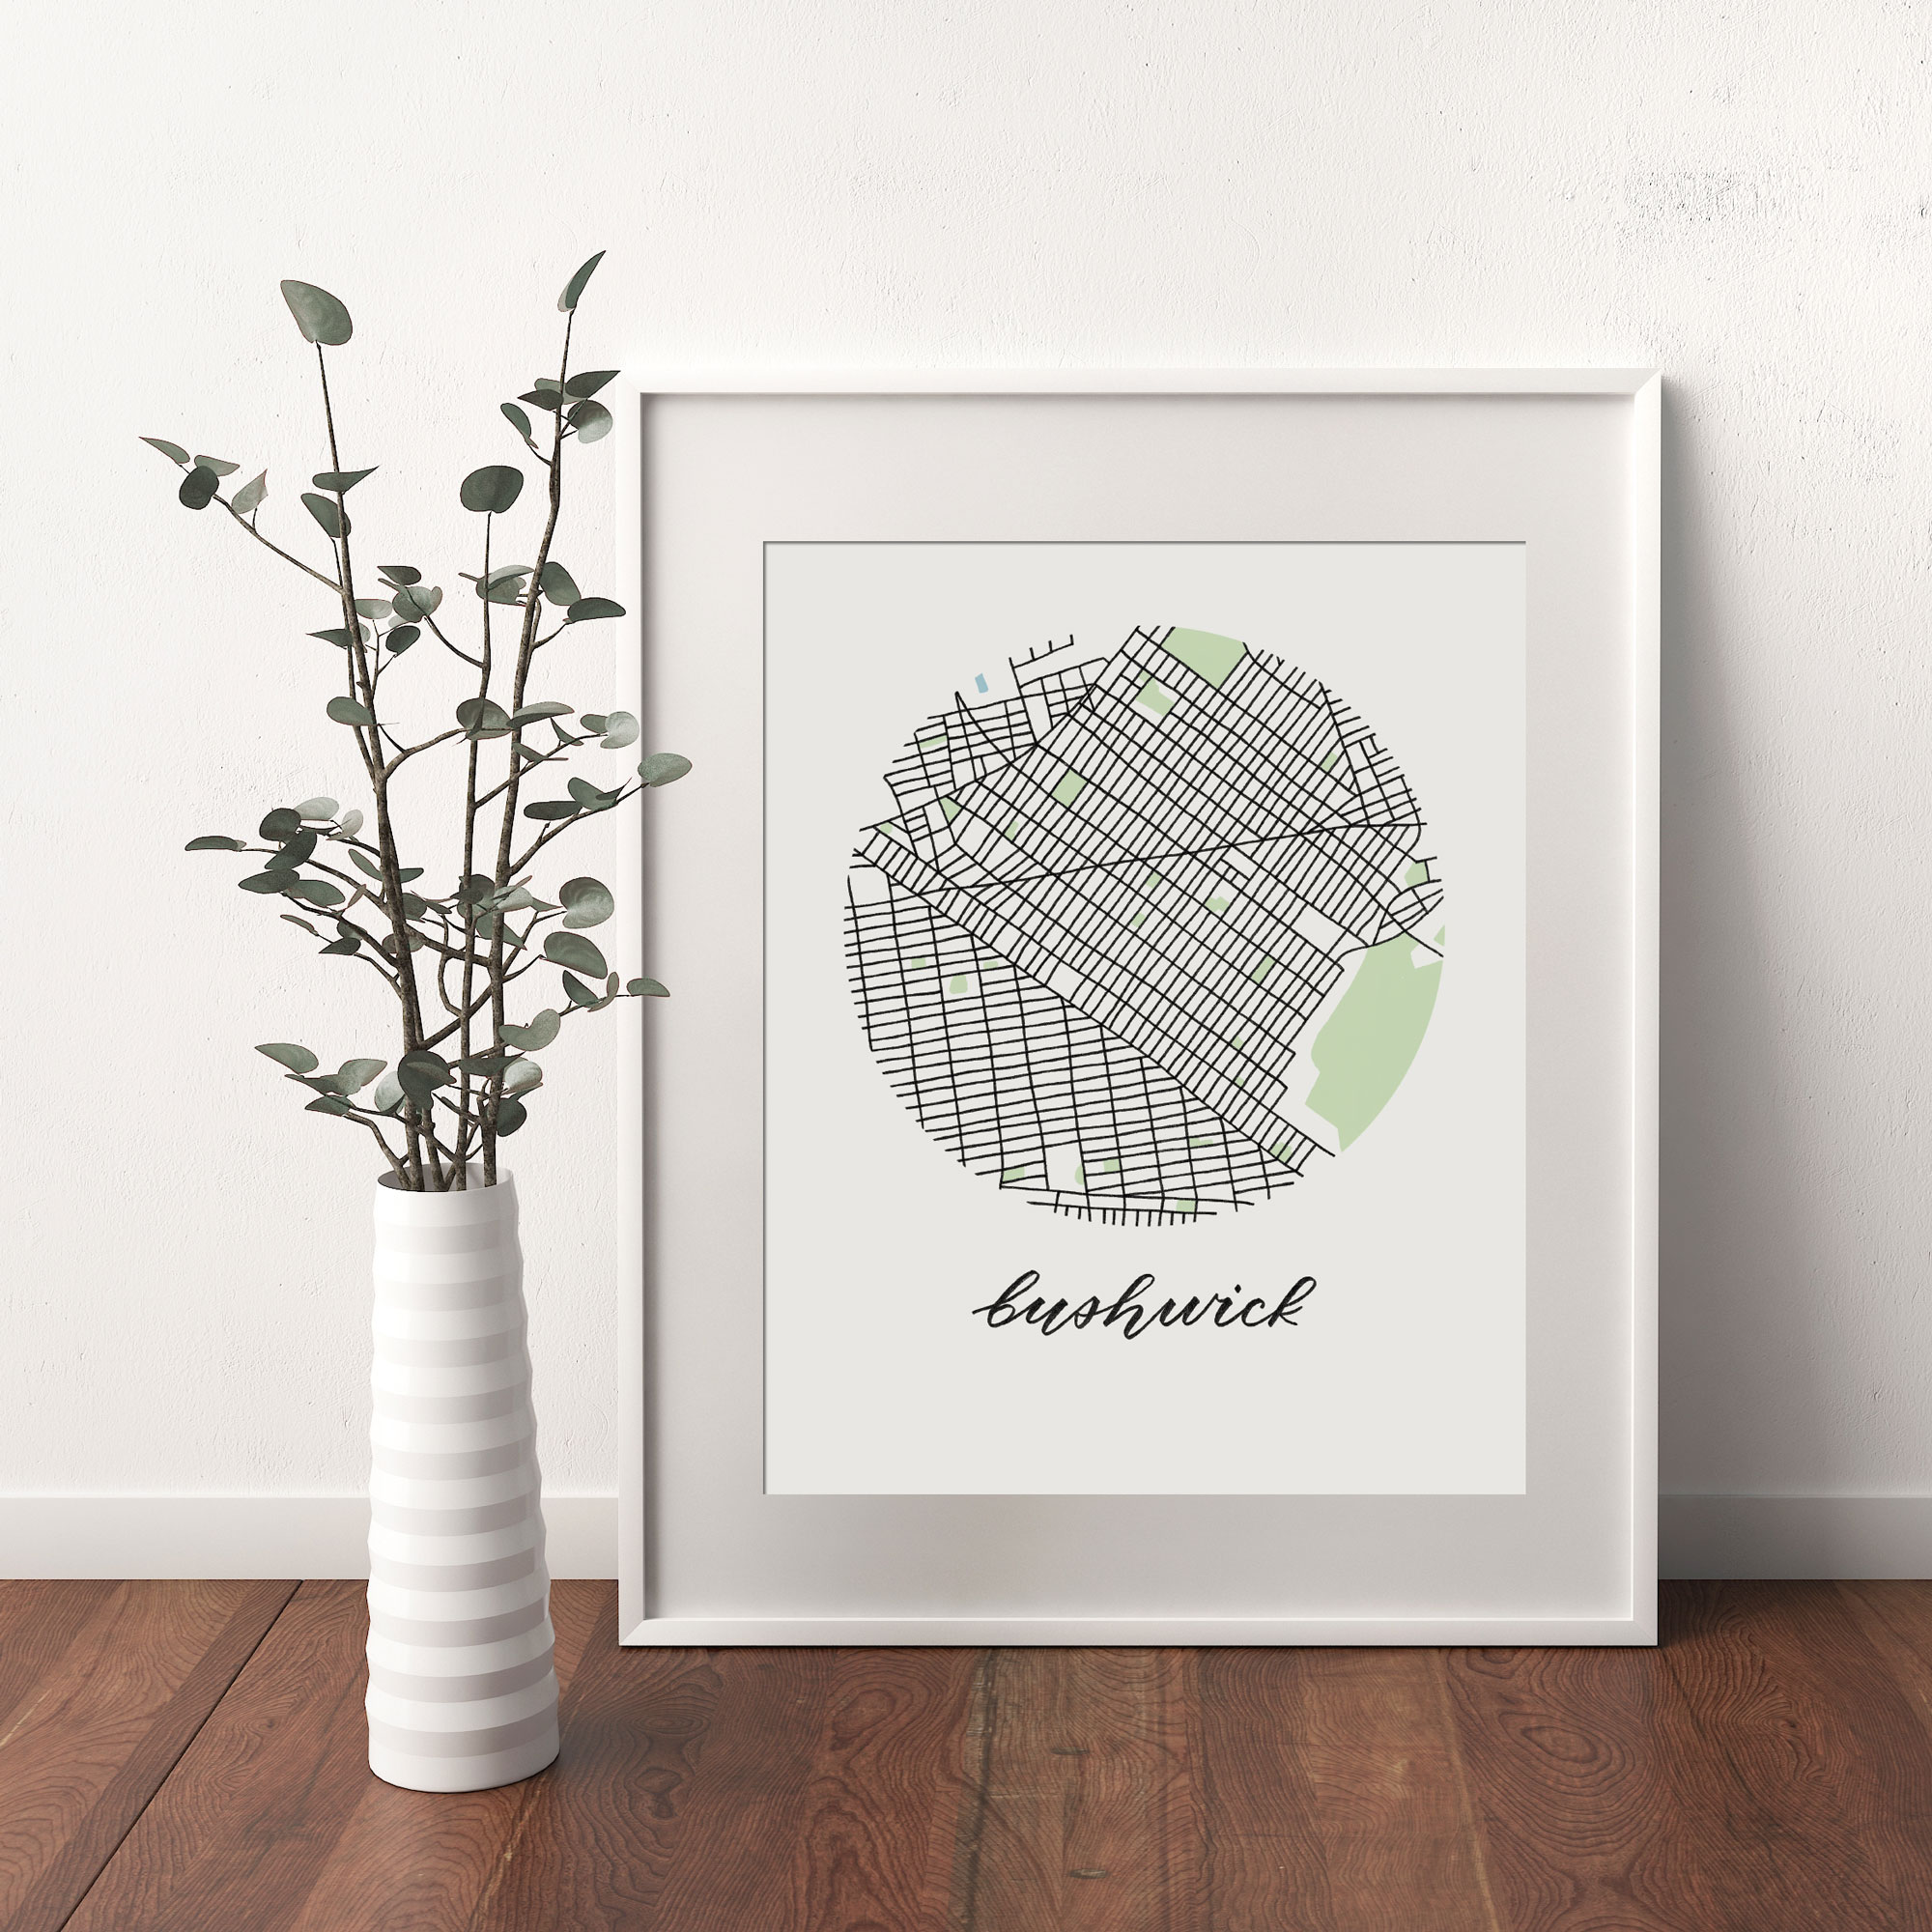 Bushwick, Brooklyn Map print framed and leaning on white wall next to dried leaves in a vase